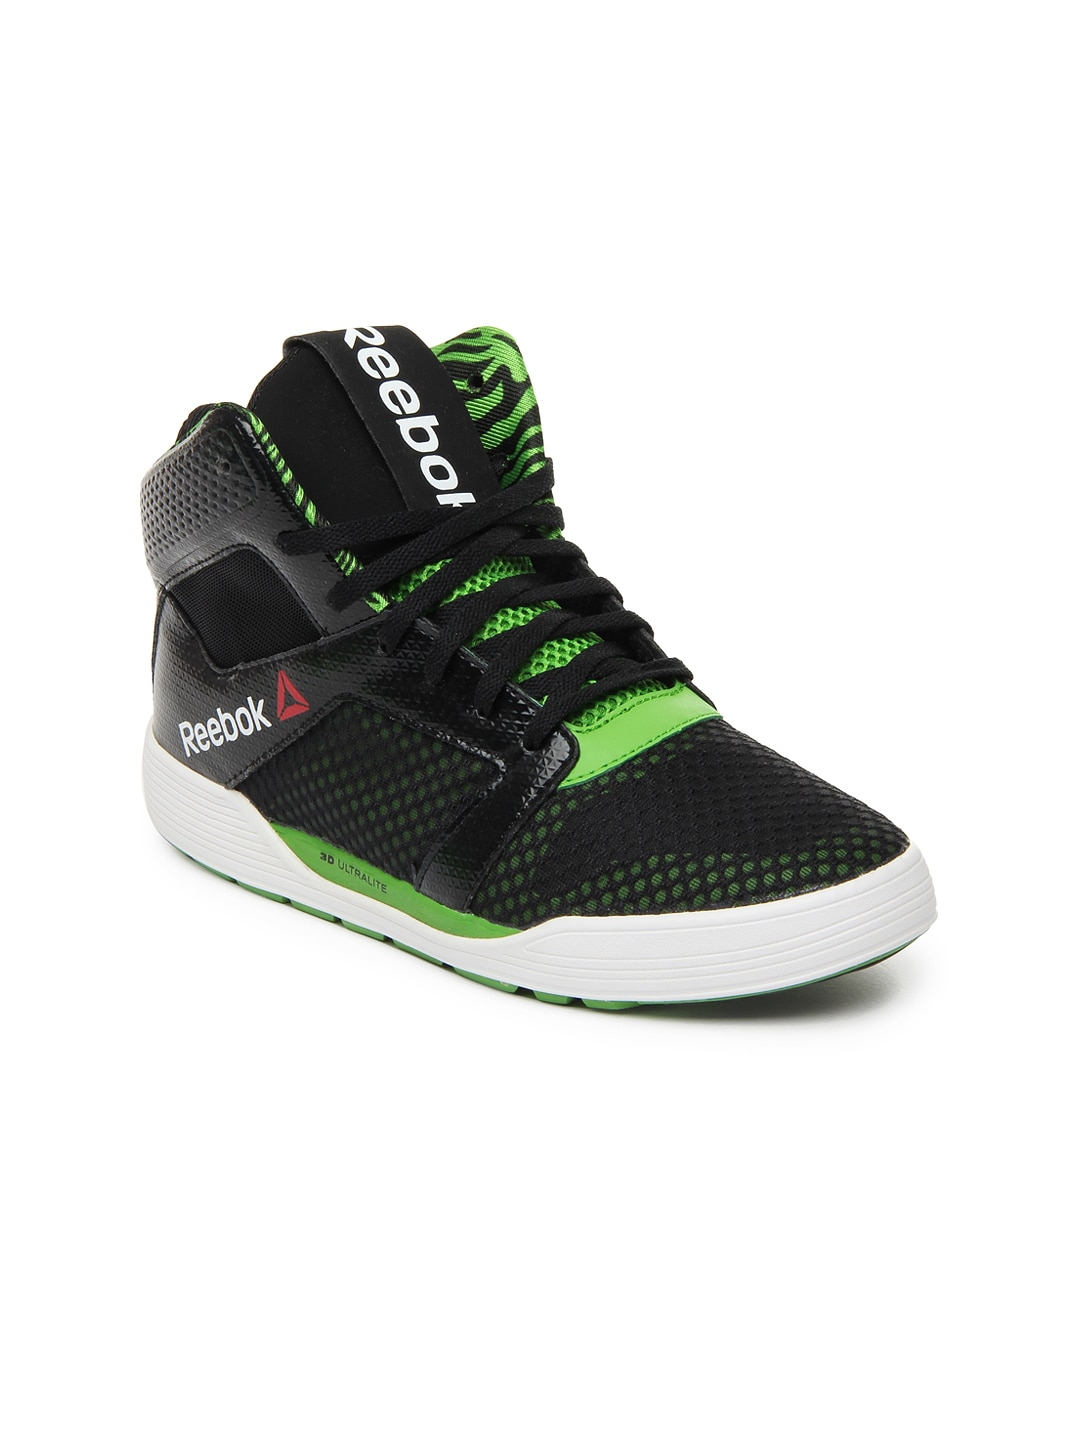 Reebok-Women-Sports-Shoes_73e1c305614266b75d0ee15e8dea5026_images.jpg